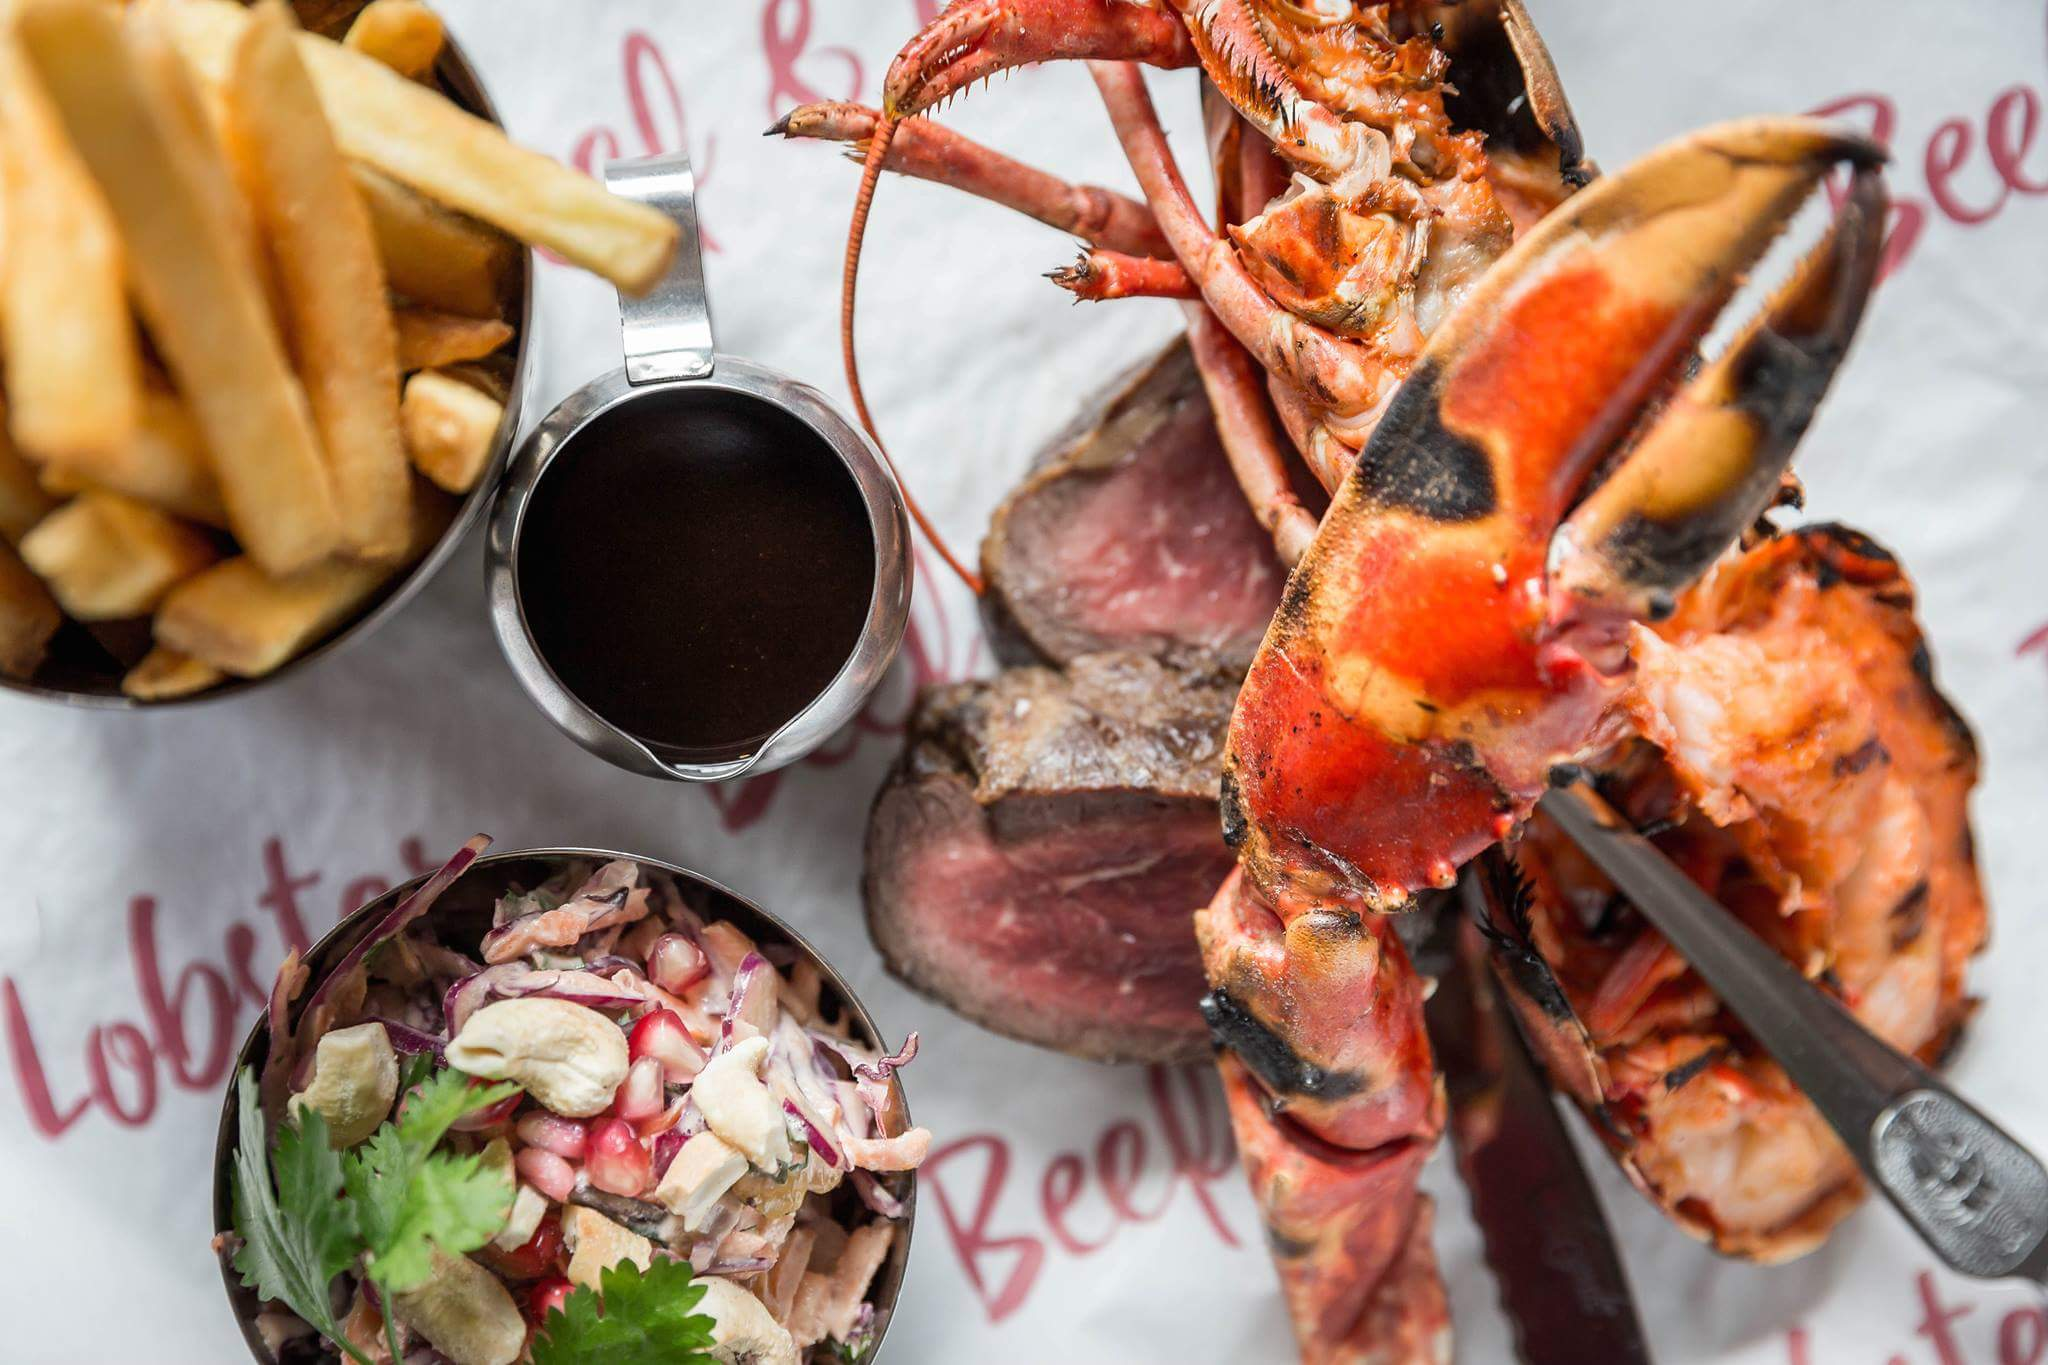 Image of Surf n Turf, Beef and Lobster Dublin